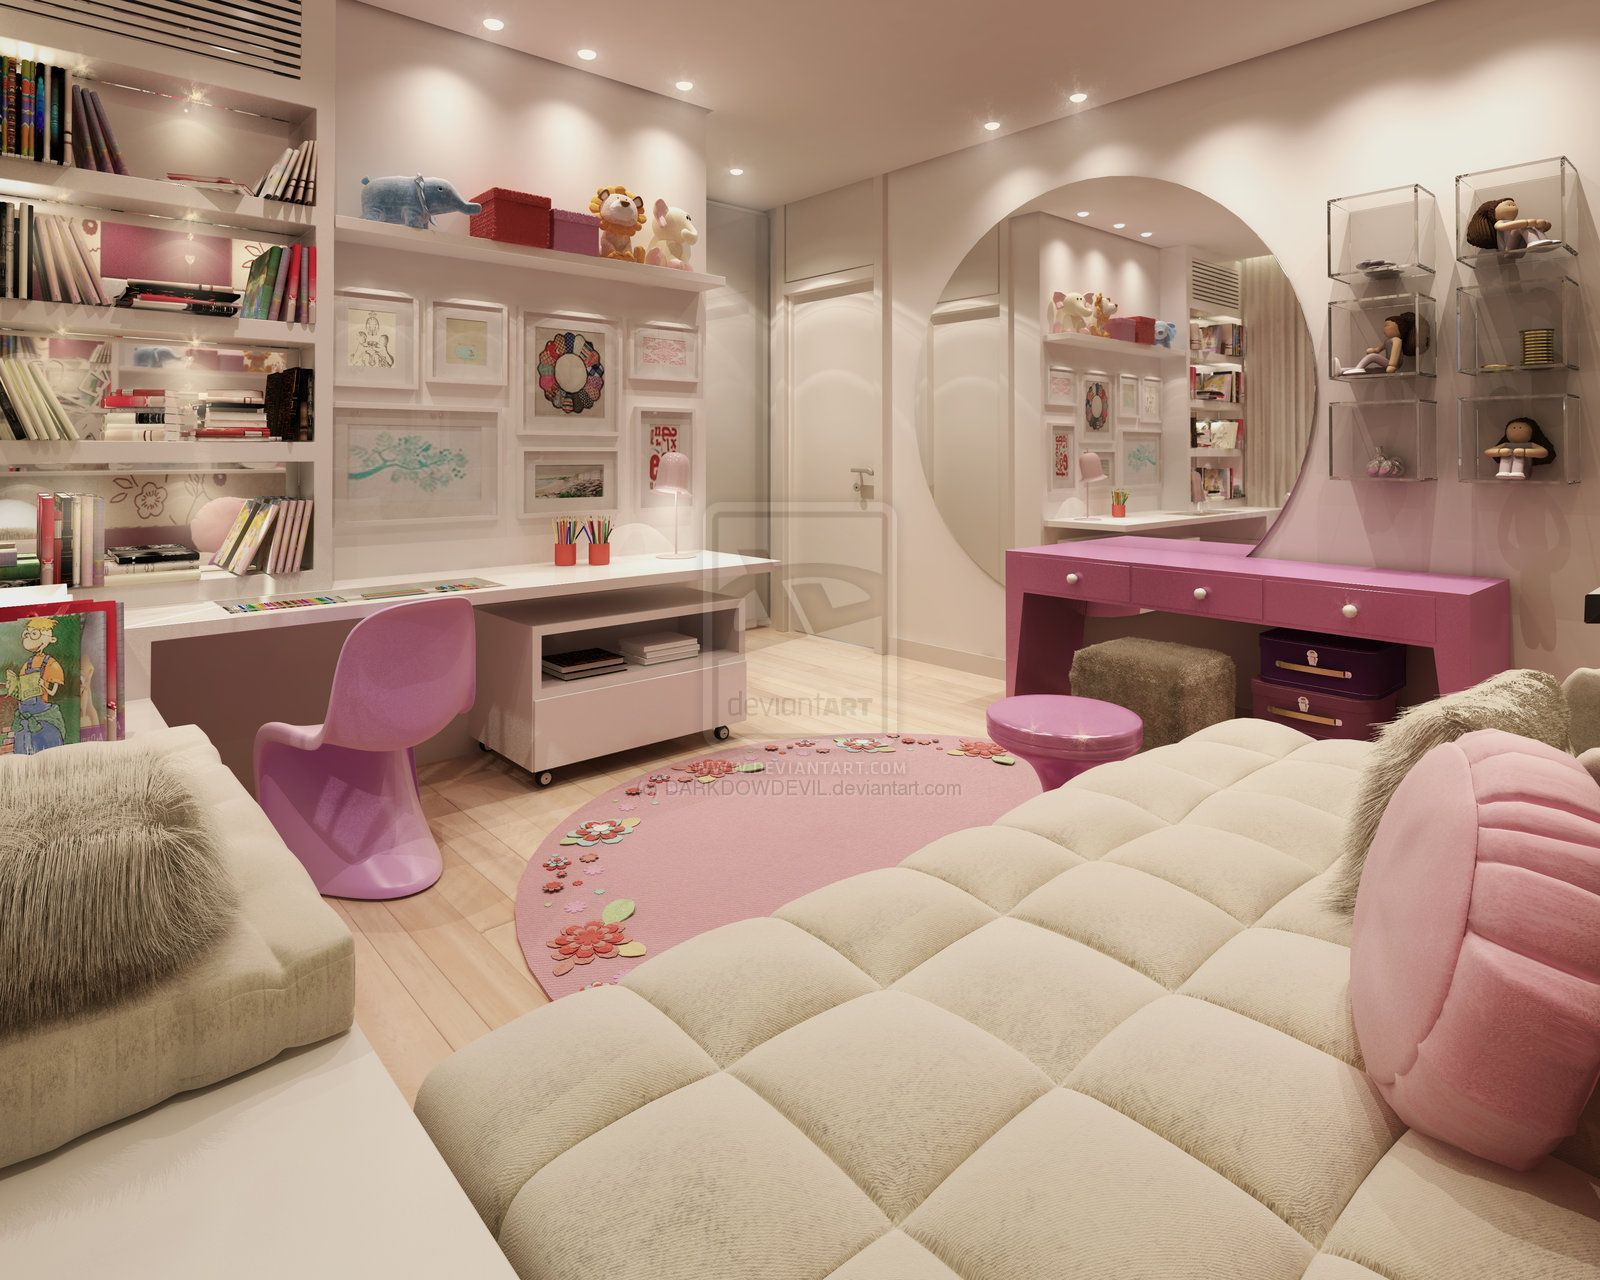 Luxury bedrooms for teenage girls - Girls Bedroom Decoration Ideas And Tips